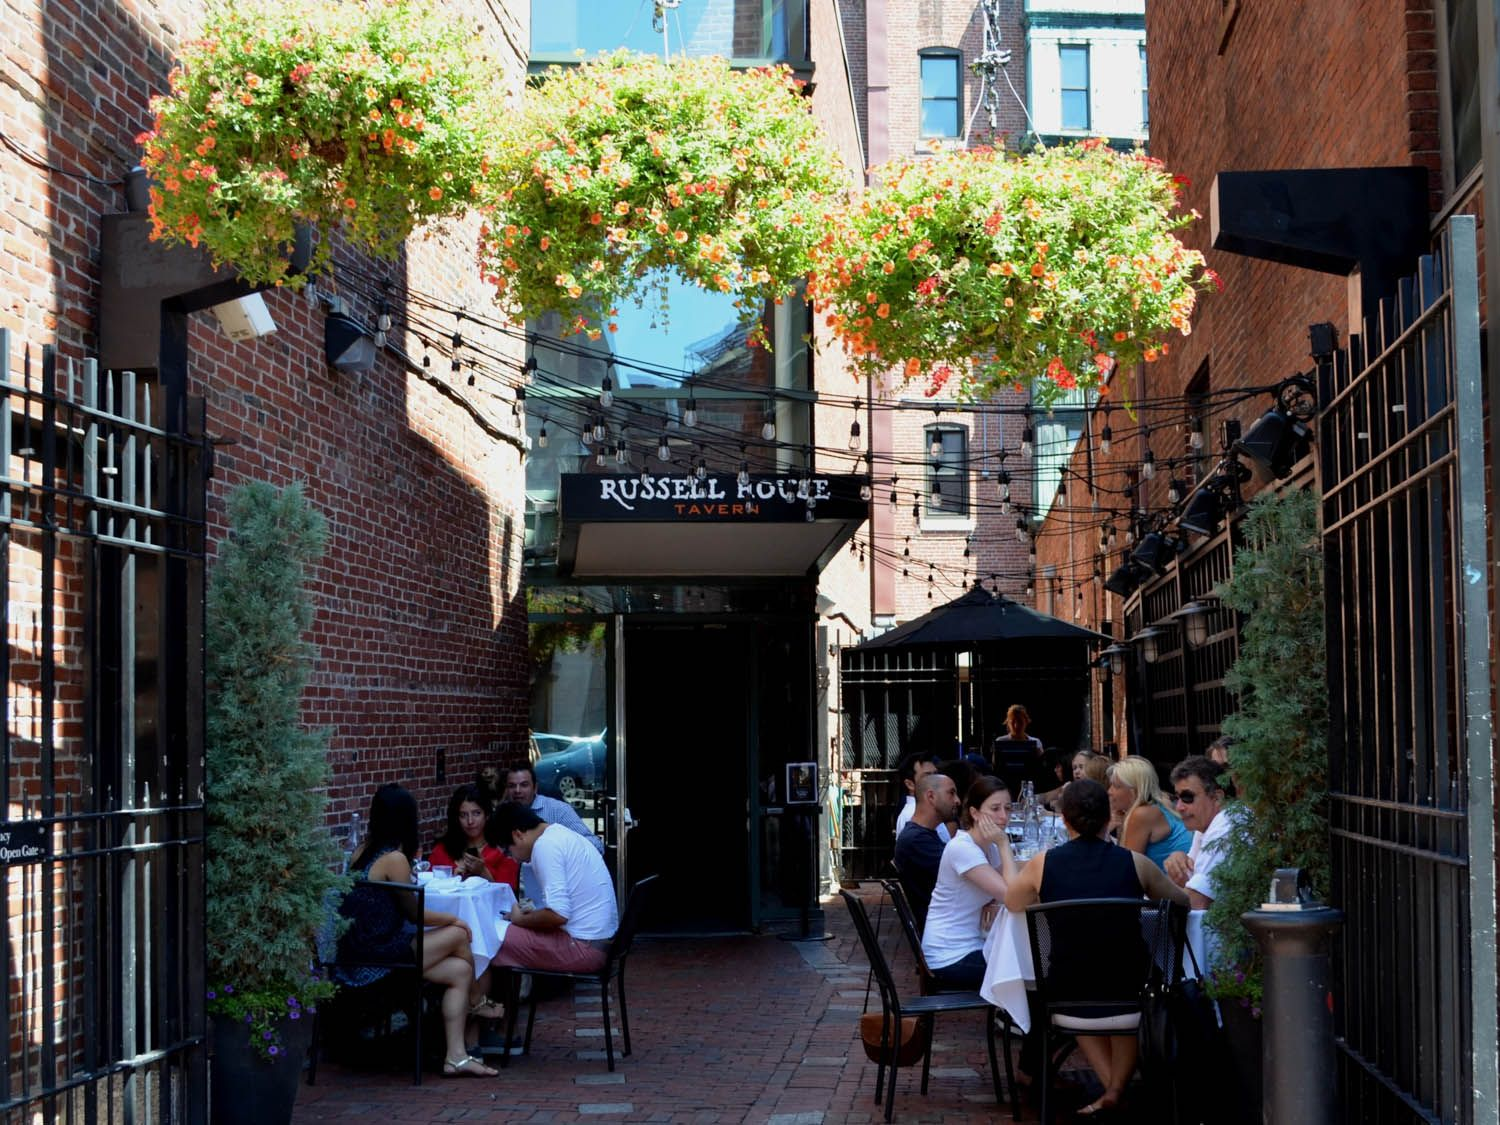 Russell House Tavern In Harvard Square | Dinner With Friends | Pinterest |  Harvard Square And Restaurants